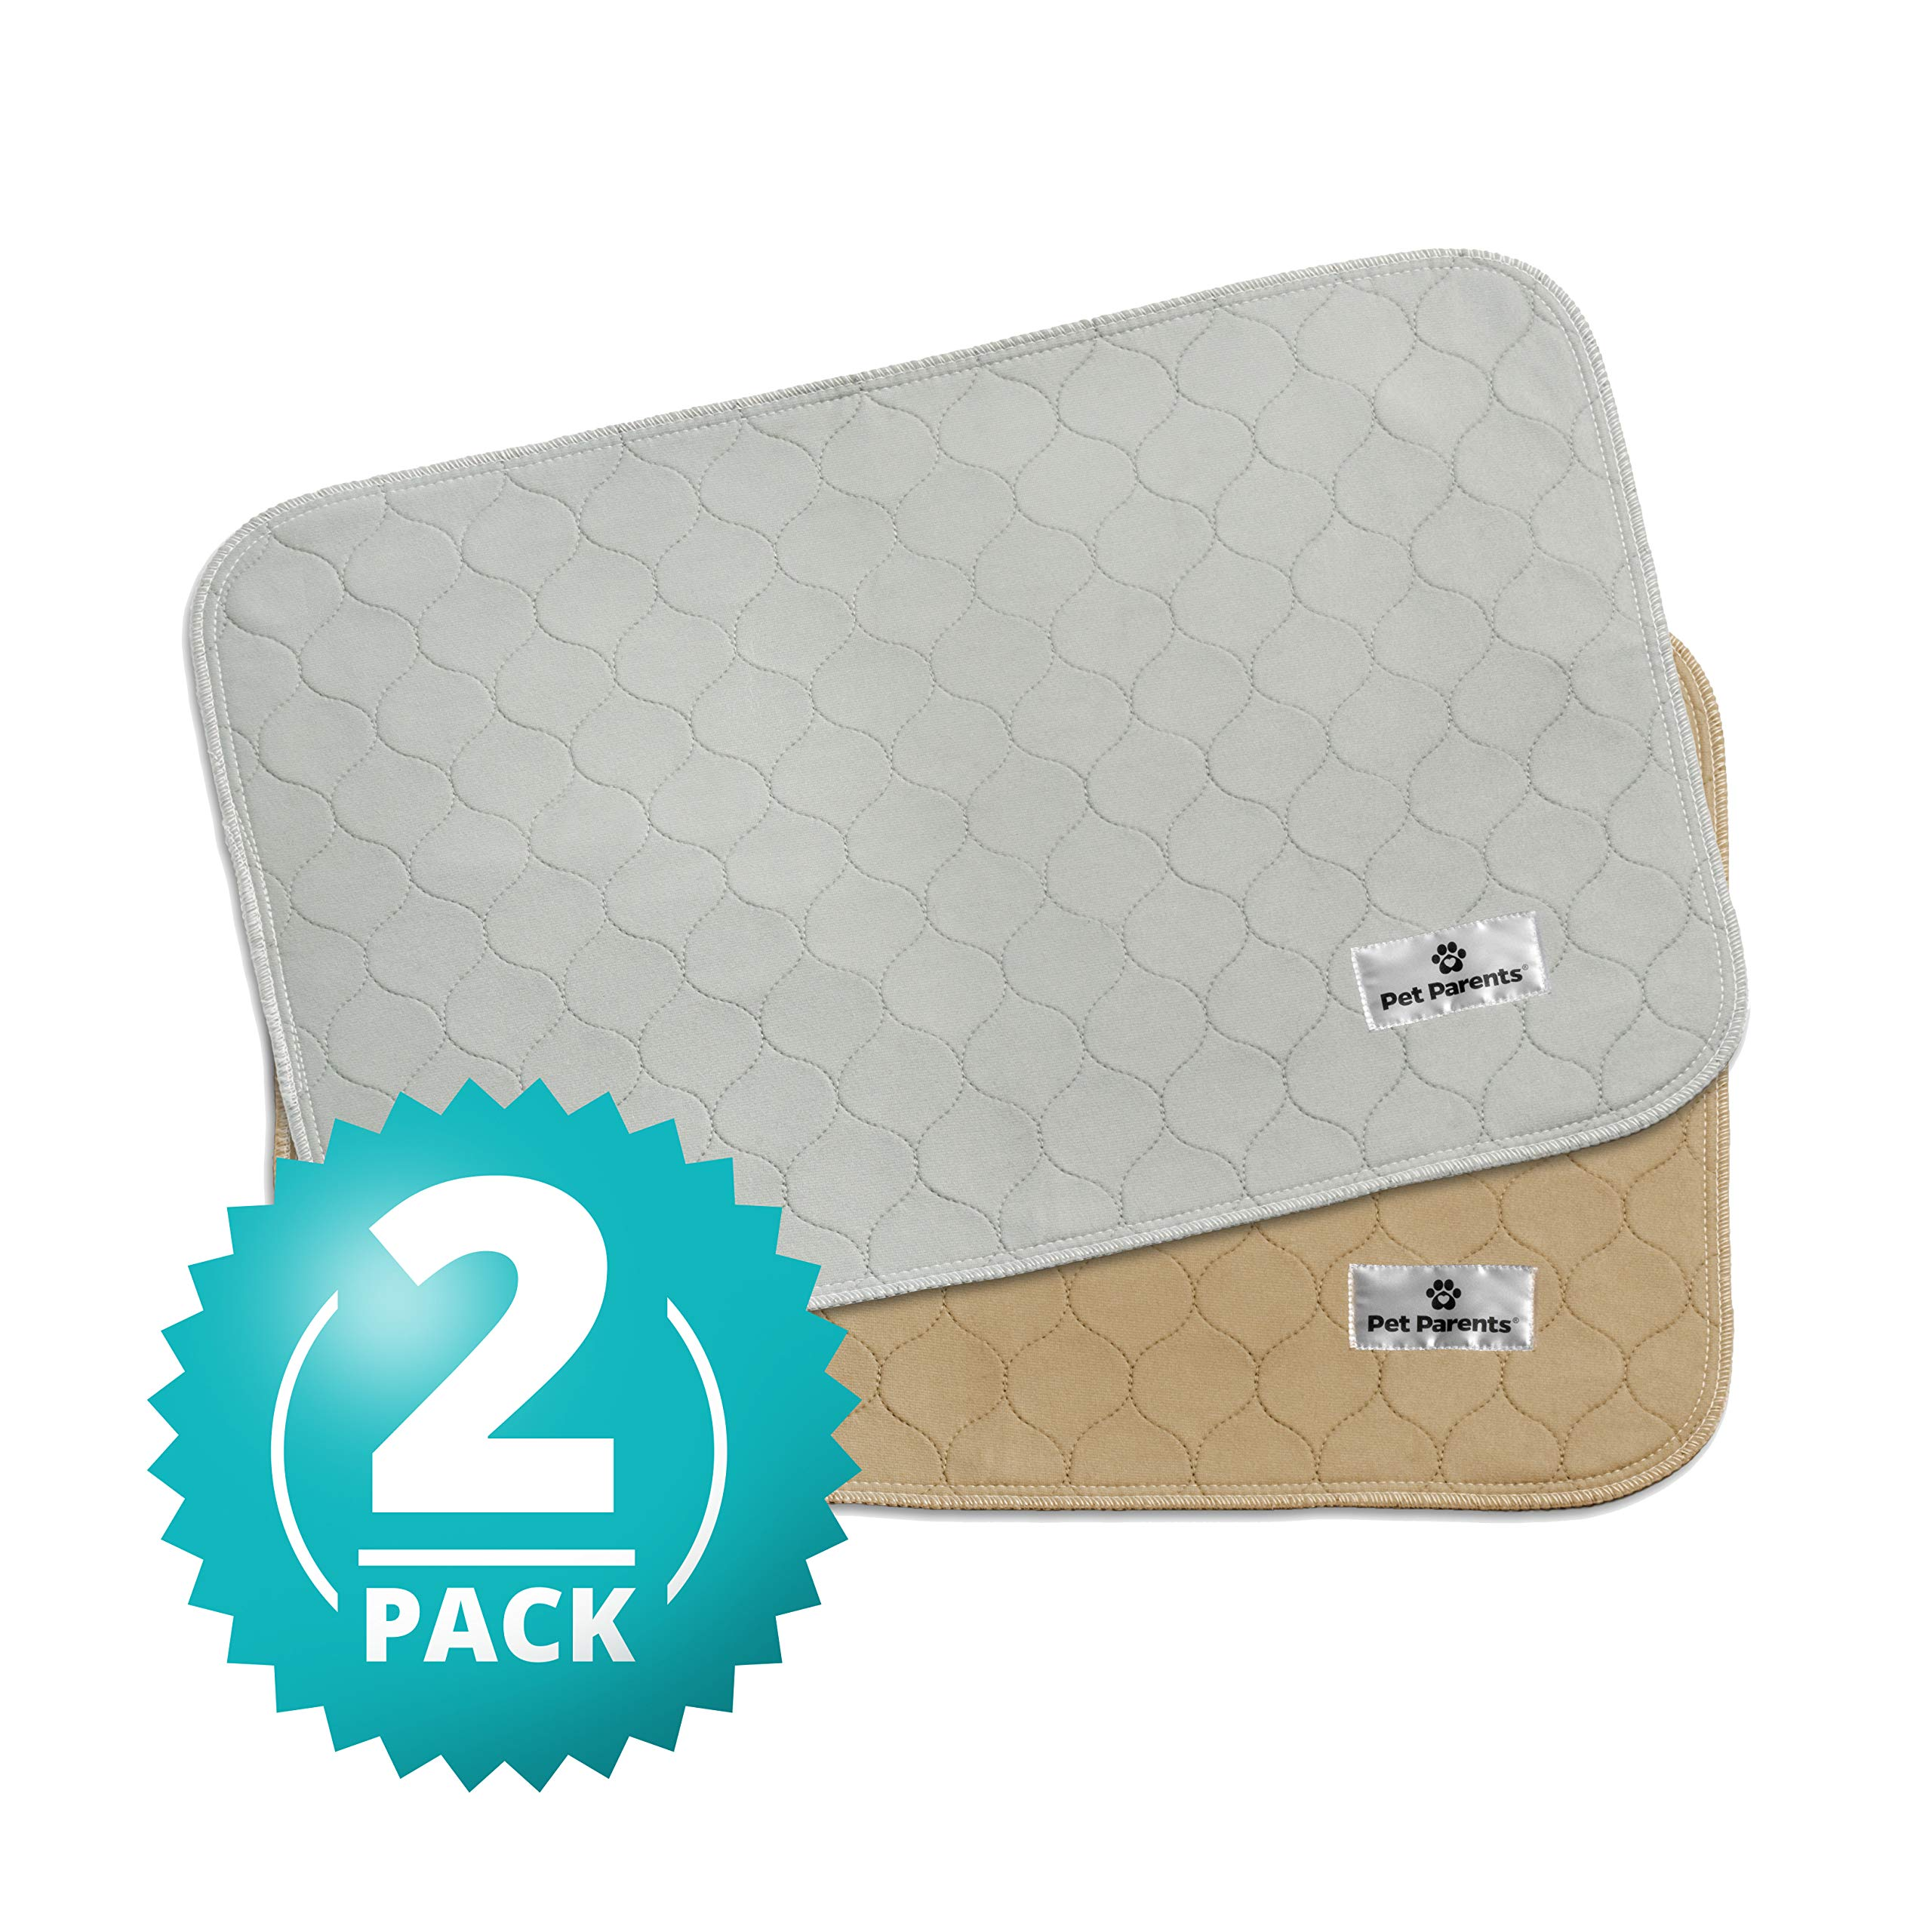 Pet Parents Washable Dog Pee Pads (2pack) of (18x24) Premium Pee Pads for Dogs, Waterproof Whelping Pads, Reusable Dog Training Pads, Quality Travel Pet Pee Pads. Modern Puppy Pads! (1 Tan & 1 Grey) by Pet Parents